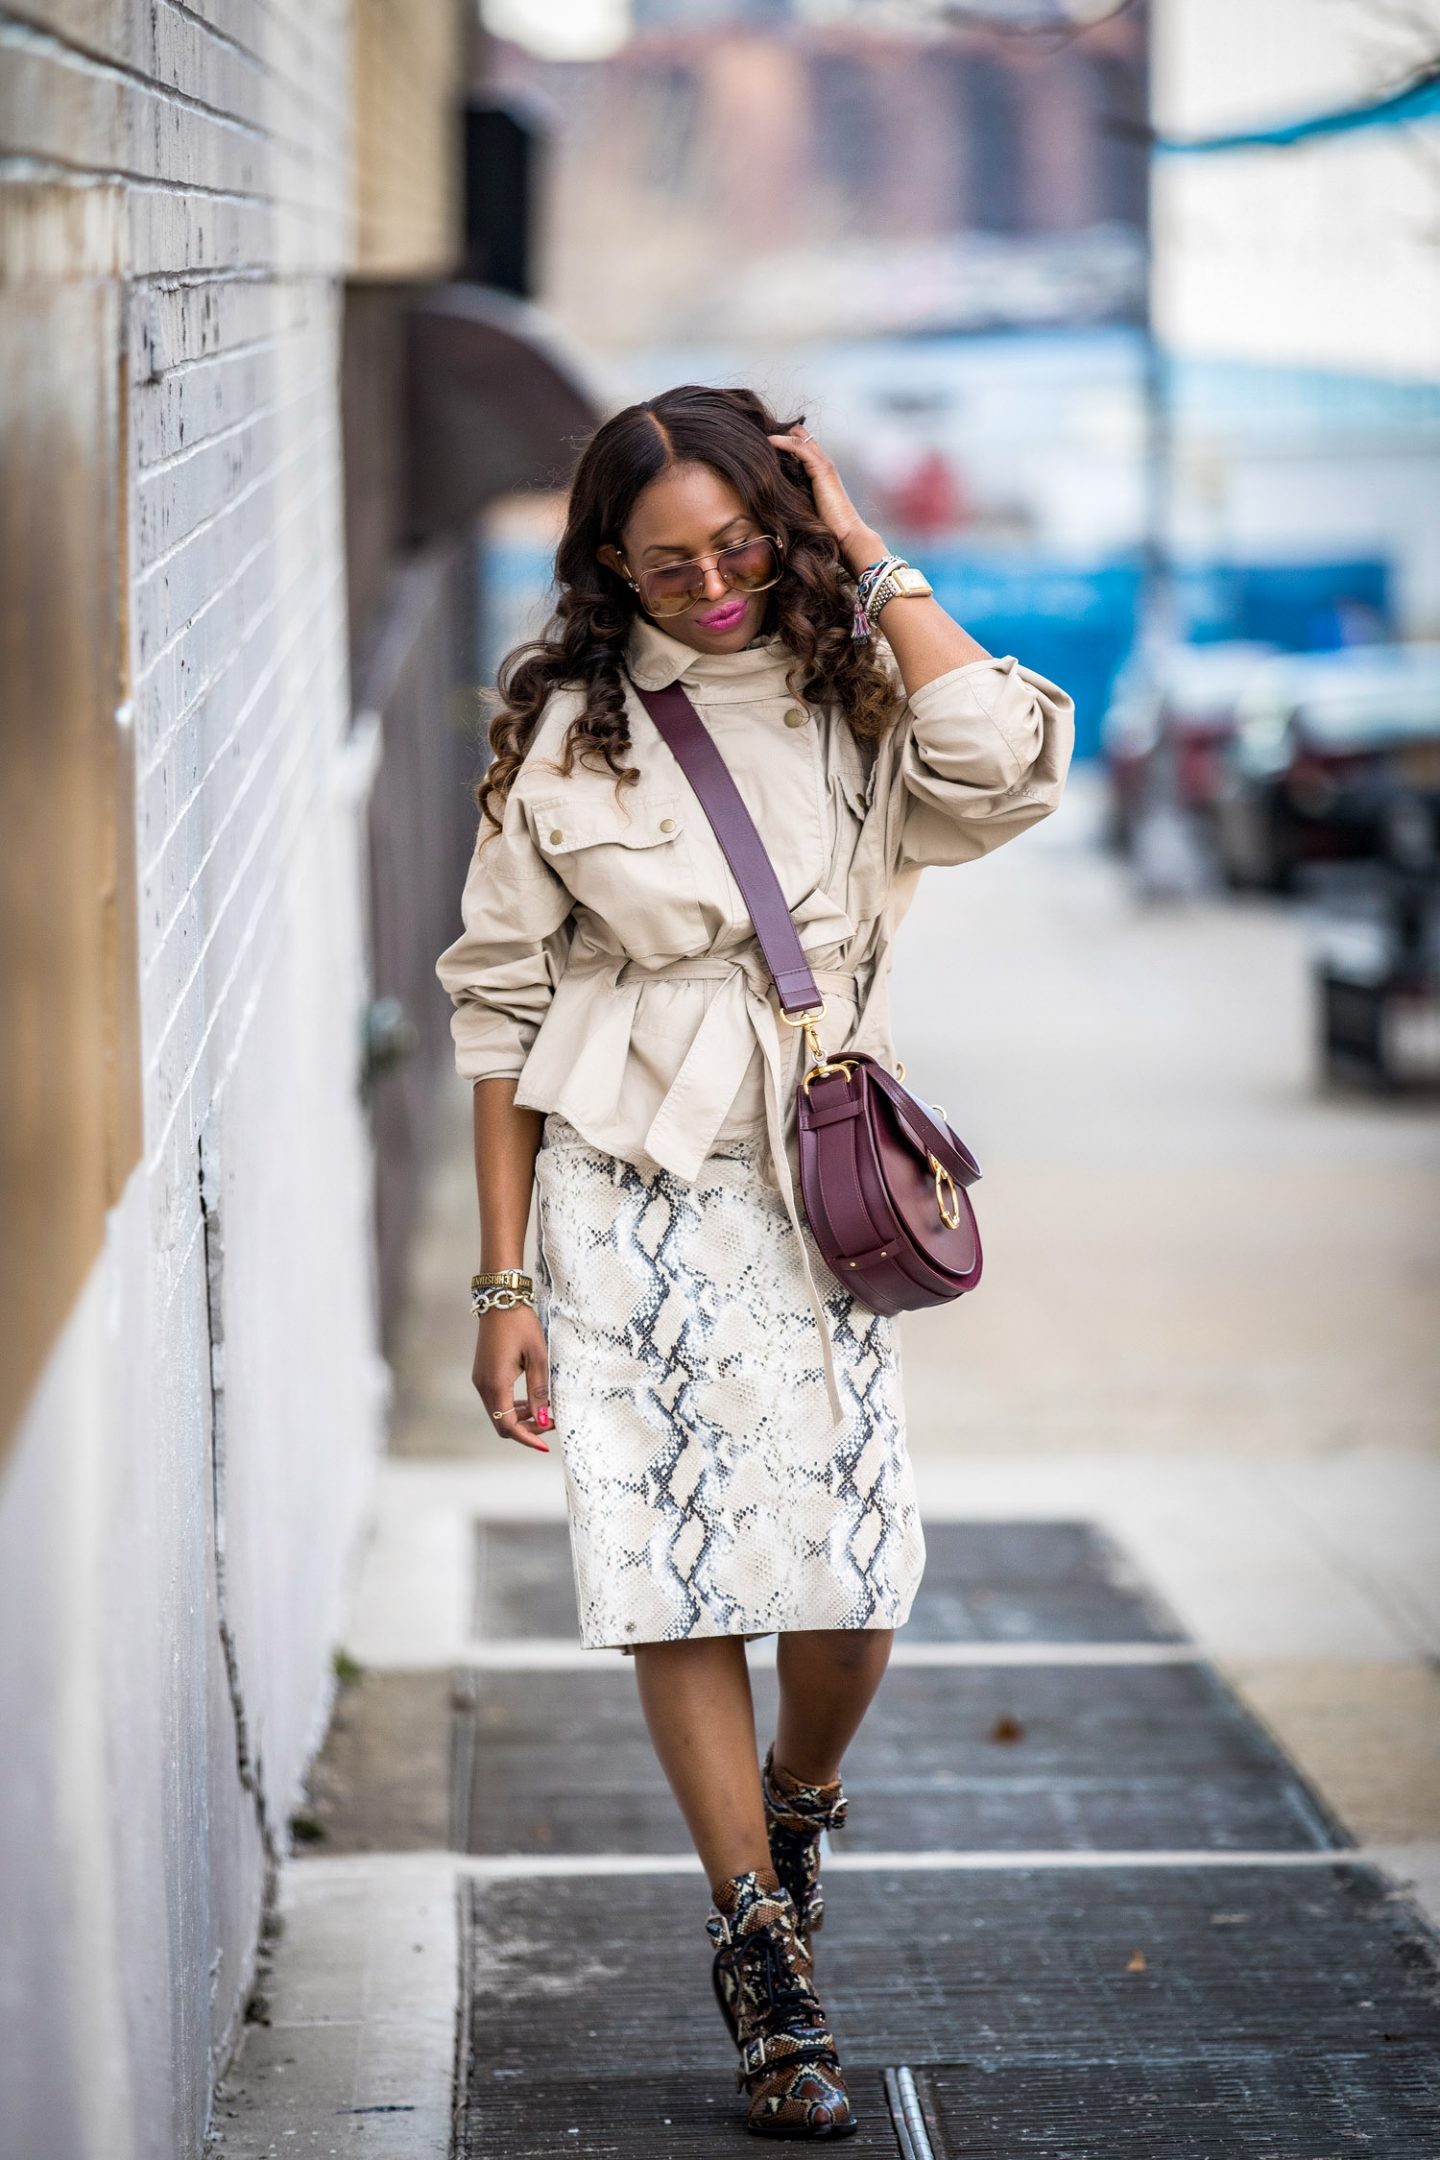 utility trend, utility chic, Atlanta lifestyle blogger Monica Awe-Etuk wearing a belted cargo jacket with a lafayette snakesin skirt and chloe snake boots. safari jacket belted jacket, Chloe tess bag, chloe bag, chloe sunglasses, chloe girl, utility jacket